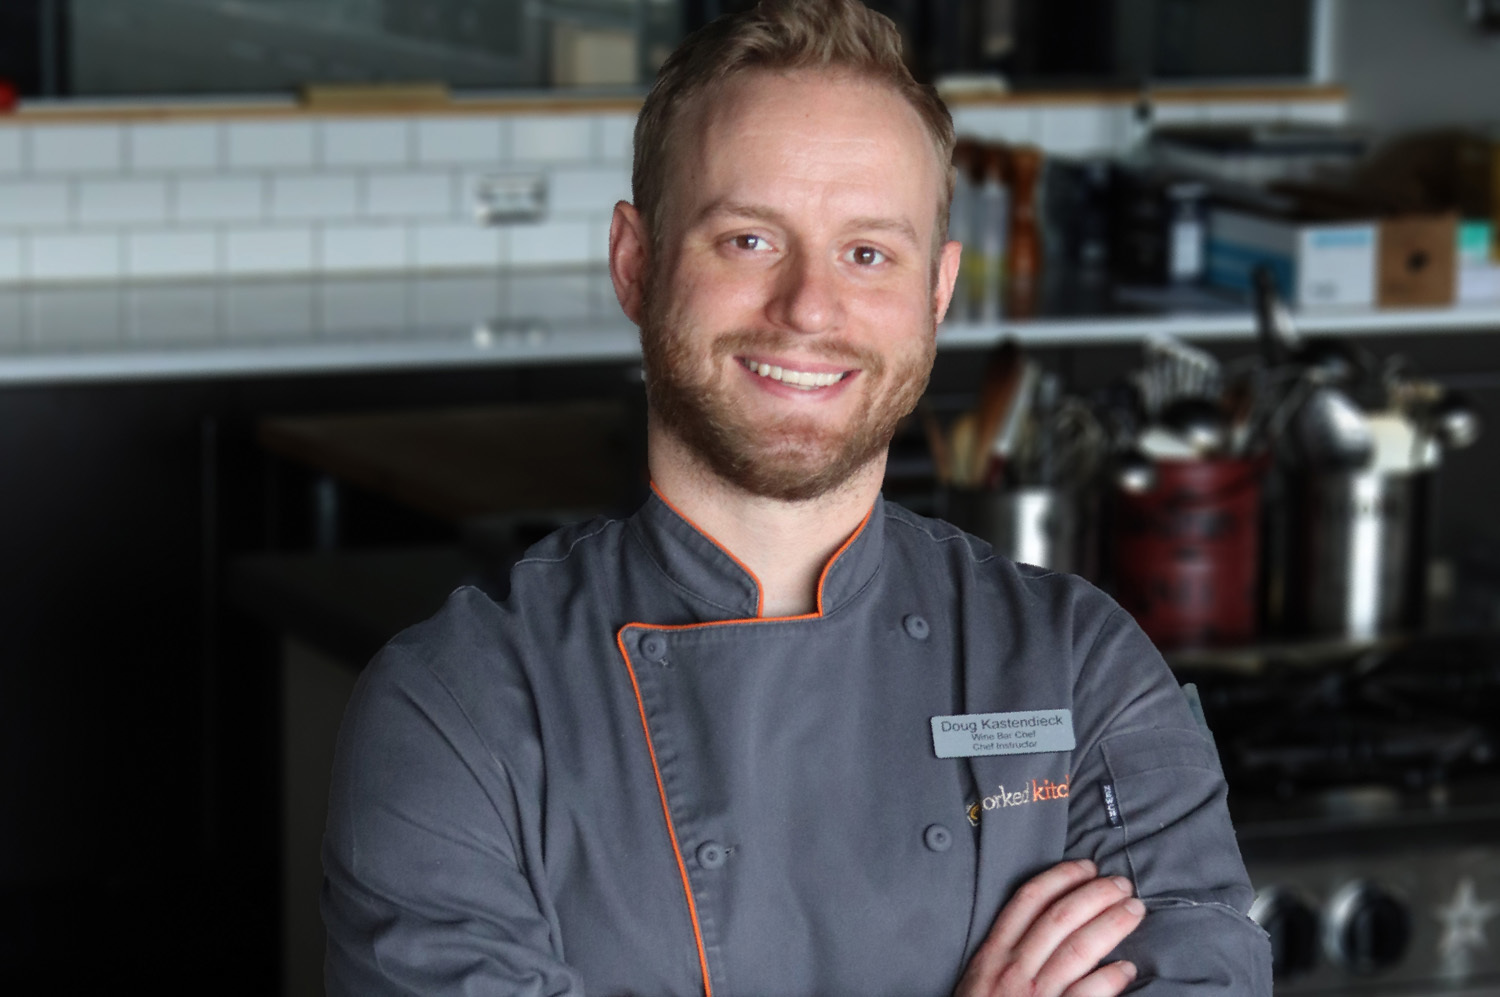 CHEF DOUG KASTENDIECK